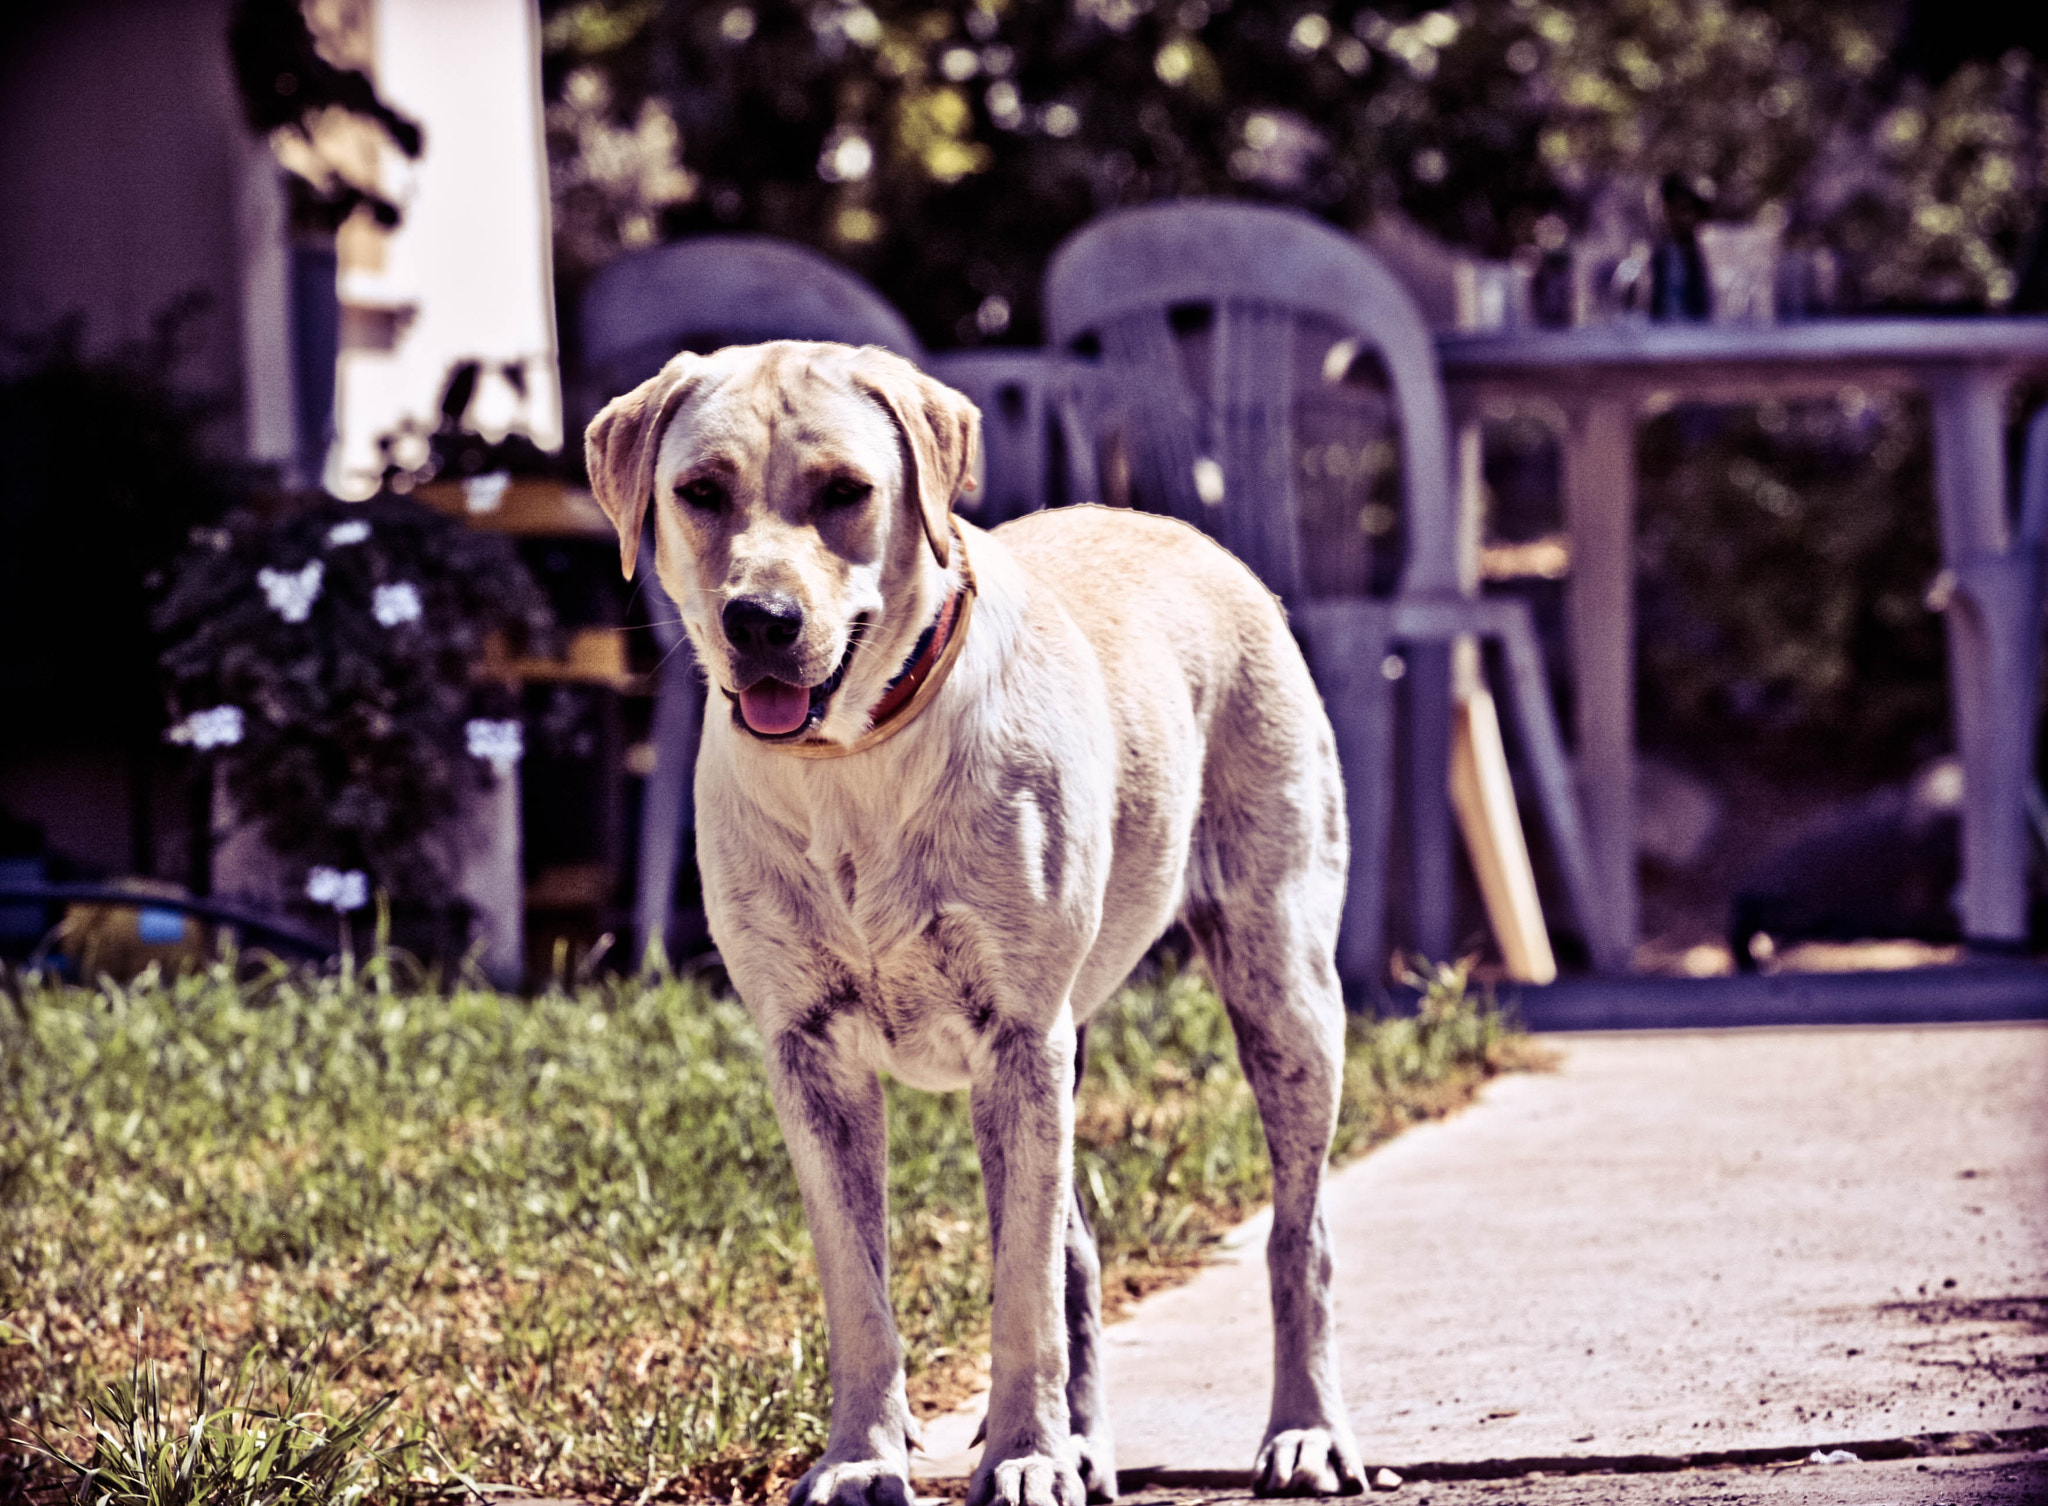 Photograph Just A DoG by Shay Bar on 500px